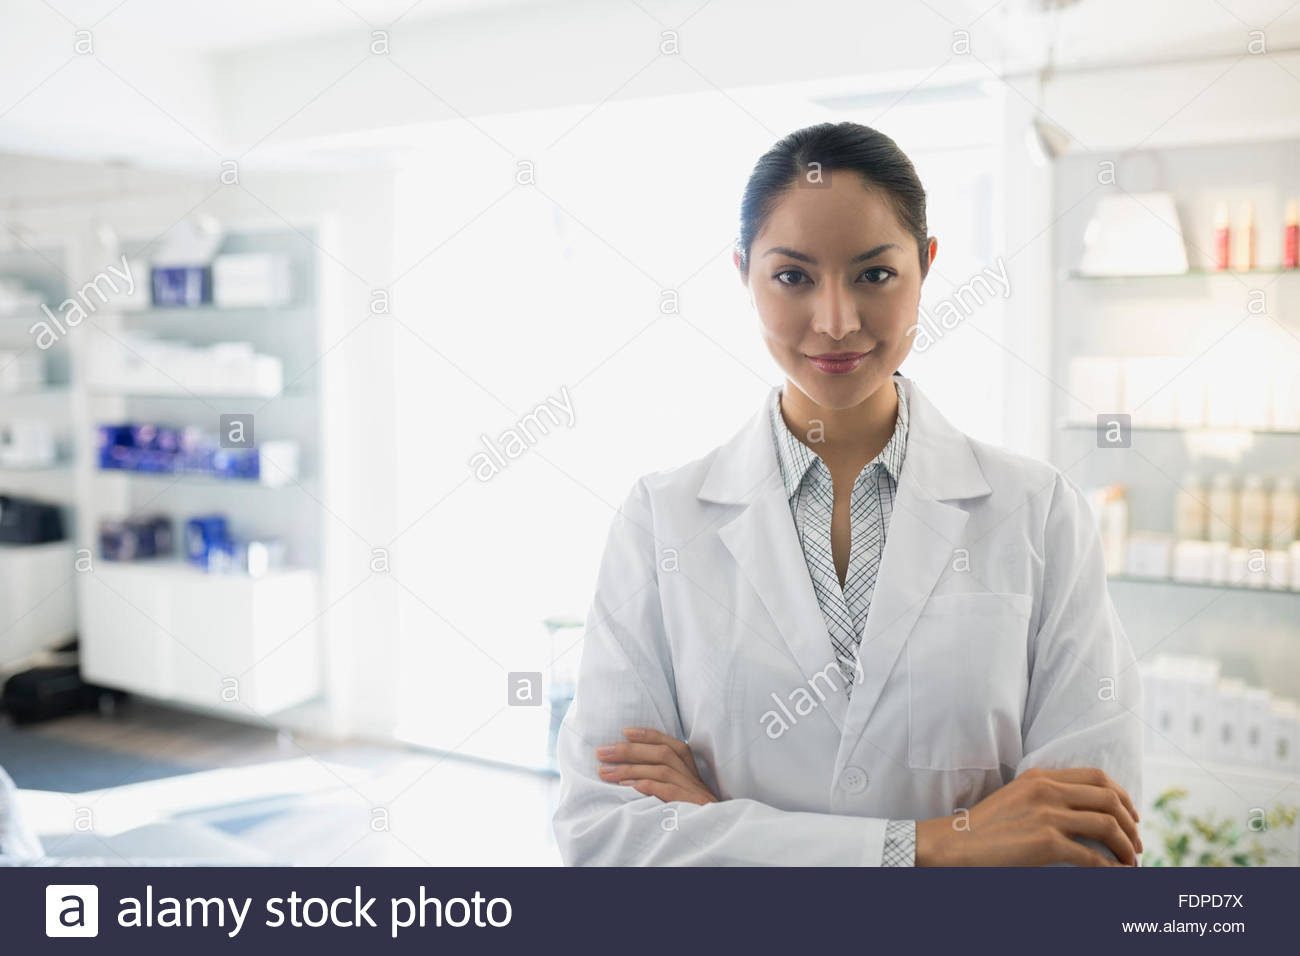 portrait confident doctors office 25-29 years - Stock Image